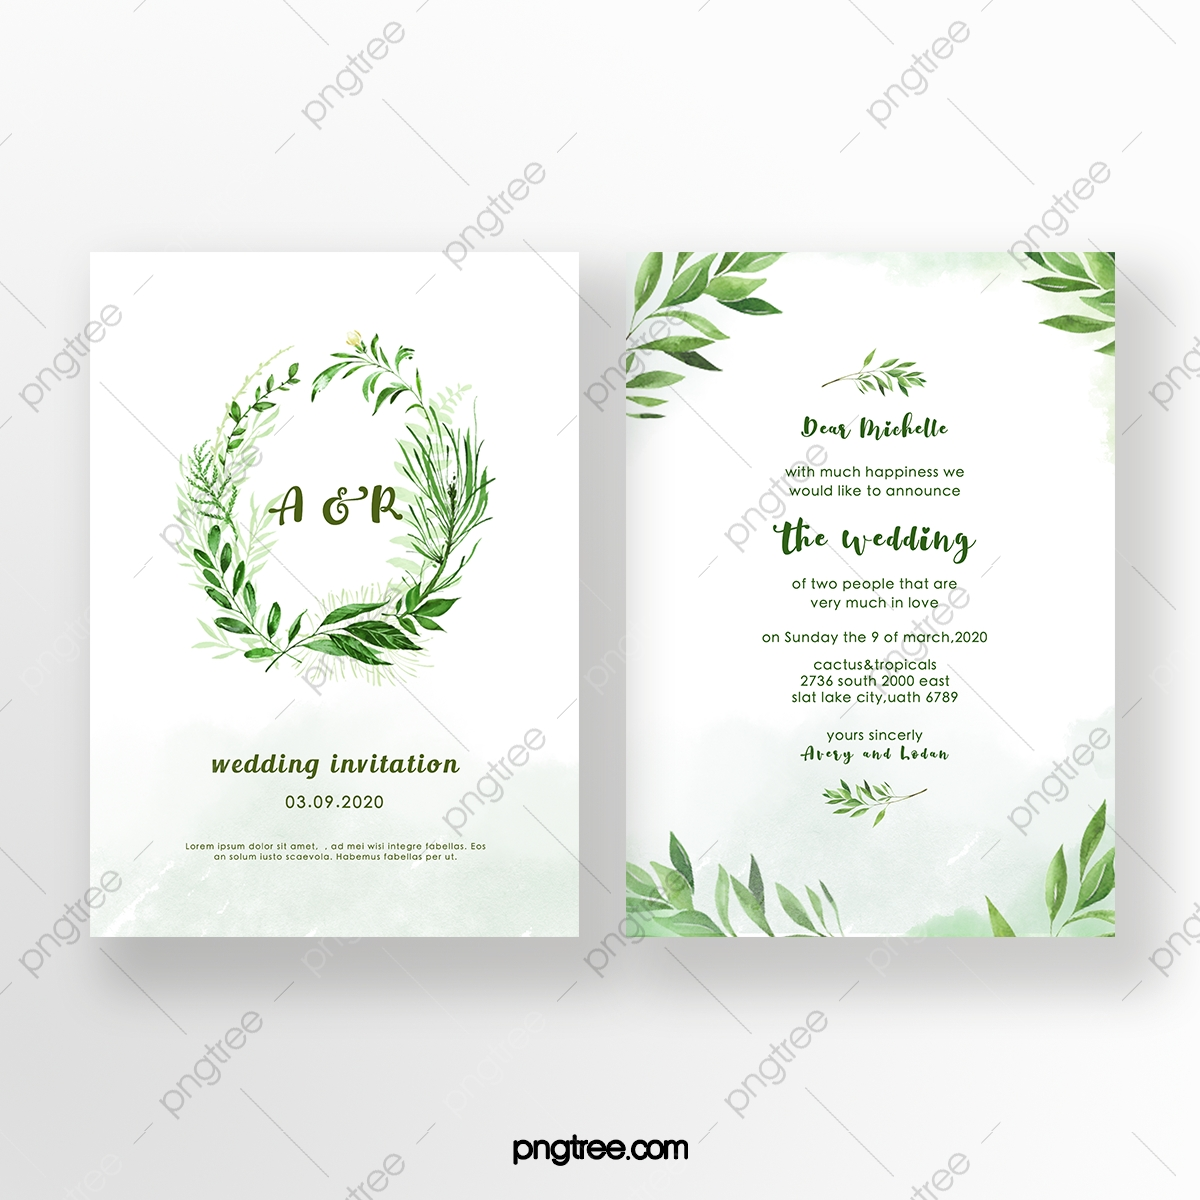 Green Leaf Fresh Style Wedding Invitation Template Download on Pngtree